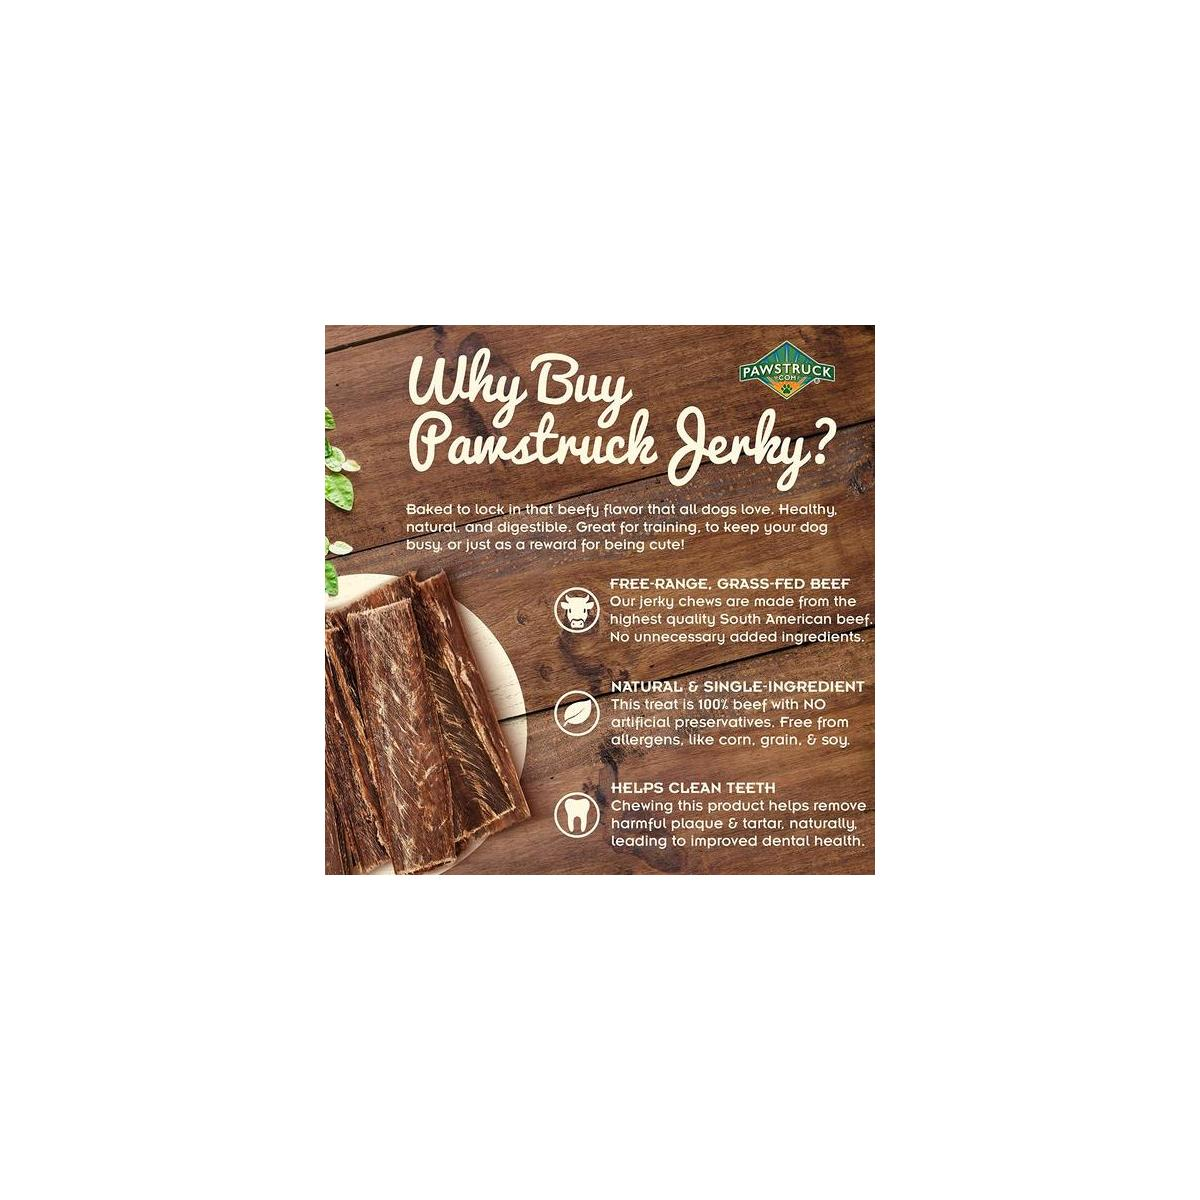 Dog Jerky Treats (25 Pack) Joint Health Beef Chews - Bulk, Gourmet, Fresh & Savory Gullet Straps - Naturally Rich in Glucosamine & Chondroitin - Promotes Healthy Joints by USA Company